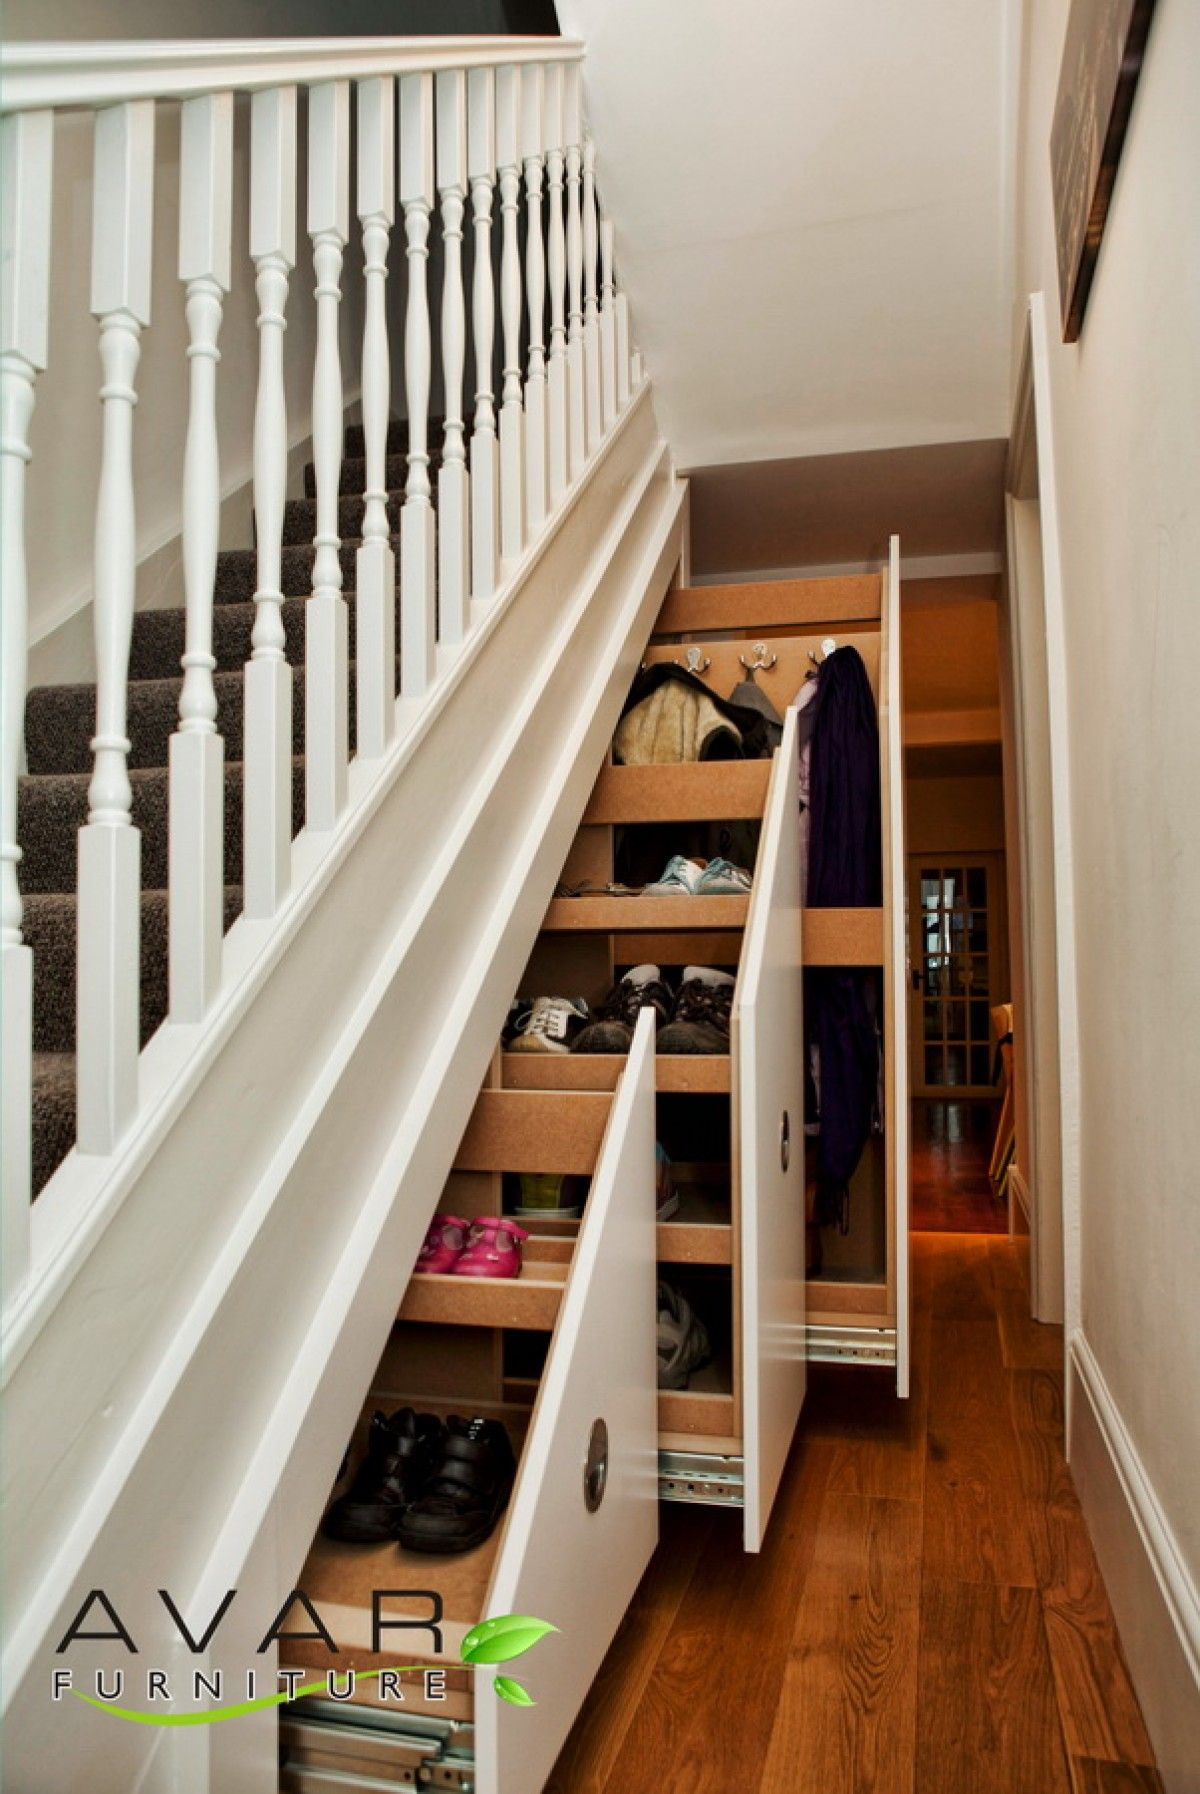 Under Stairs Storage in White Wooden Stairs and Racks With .